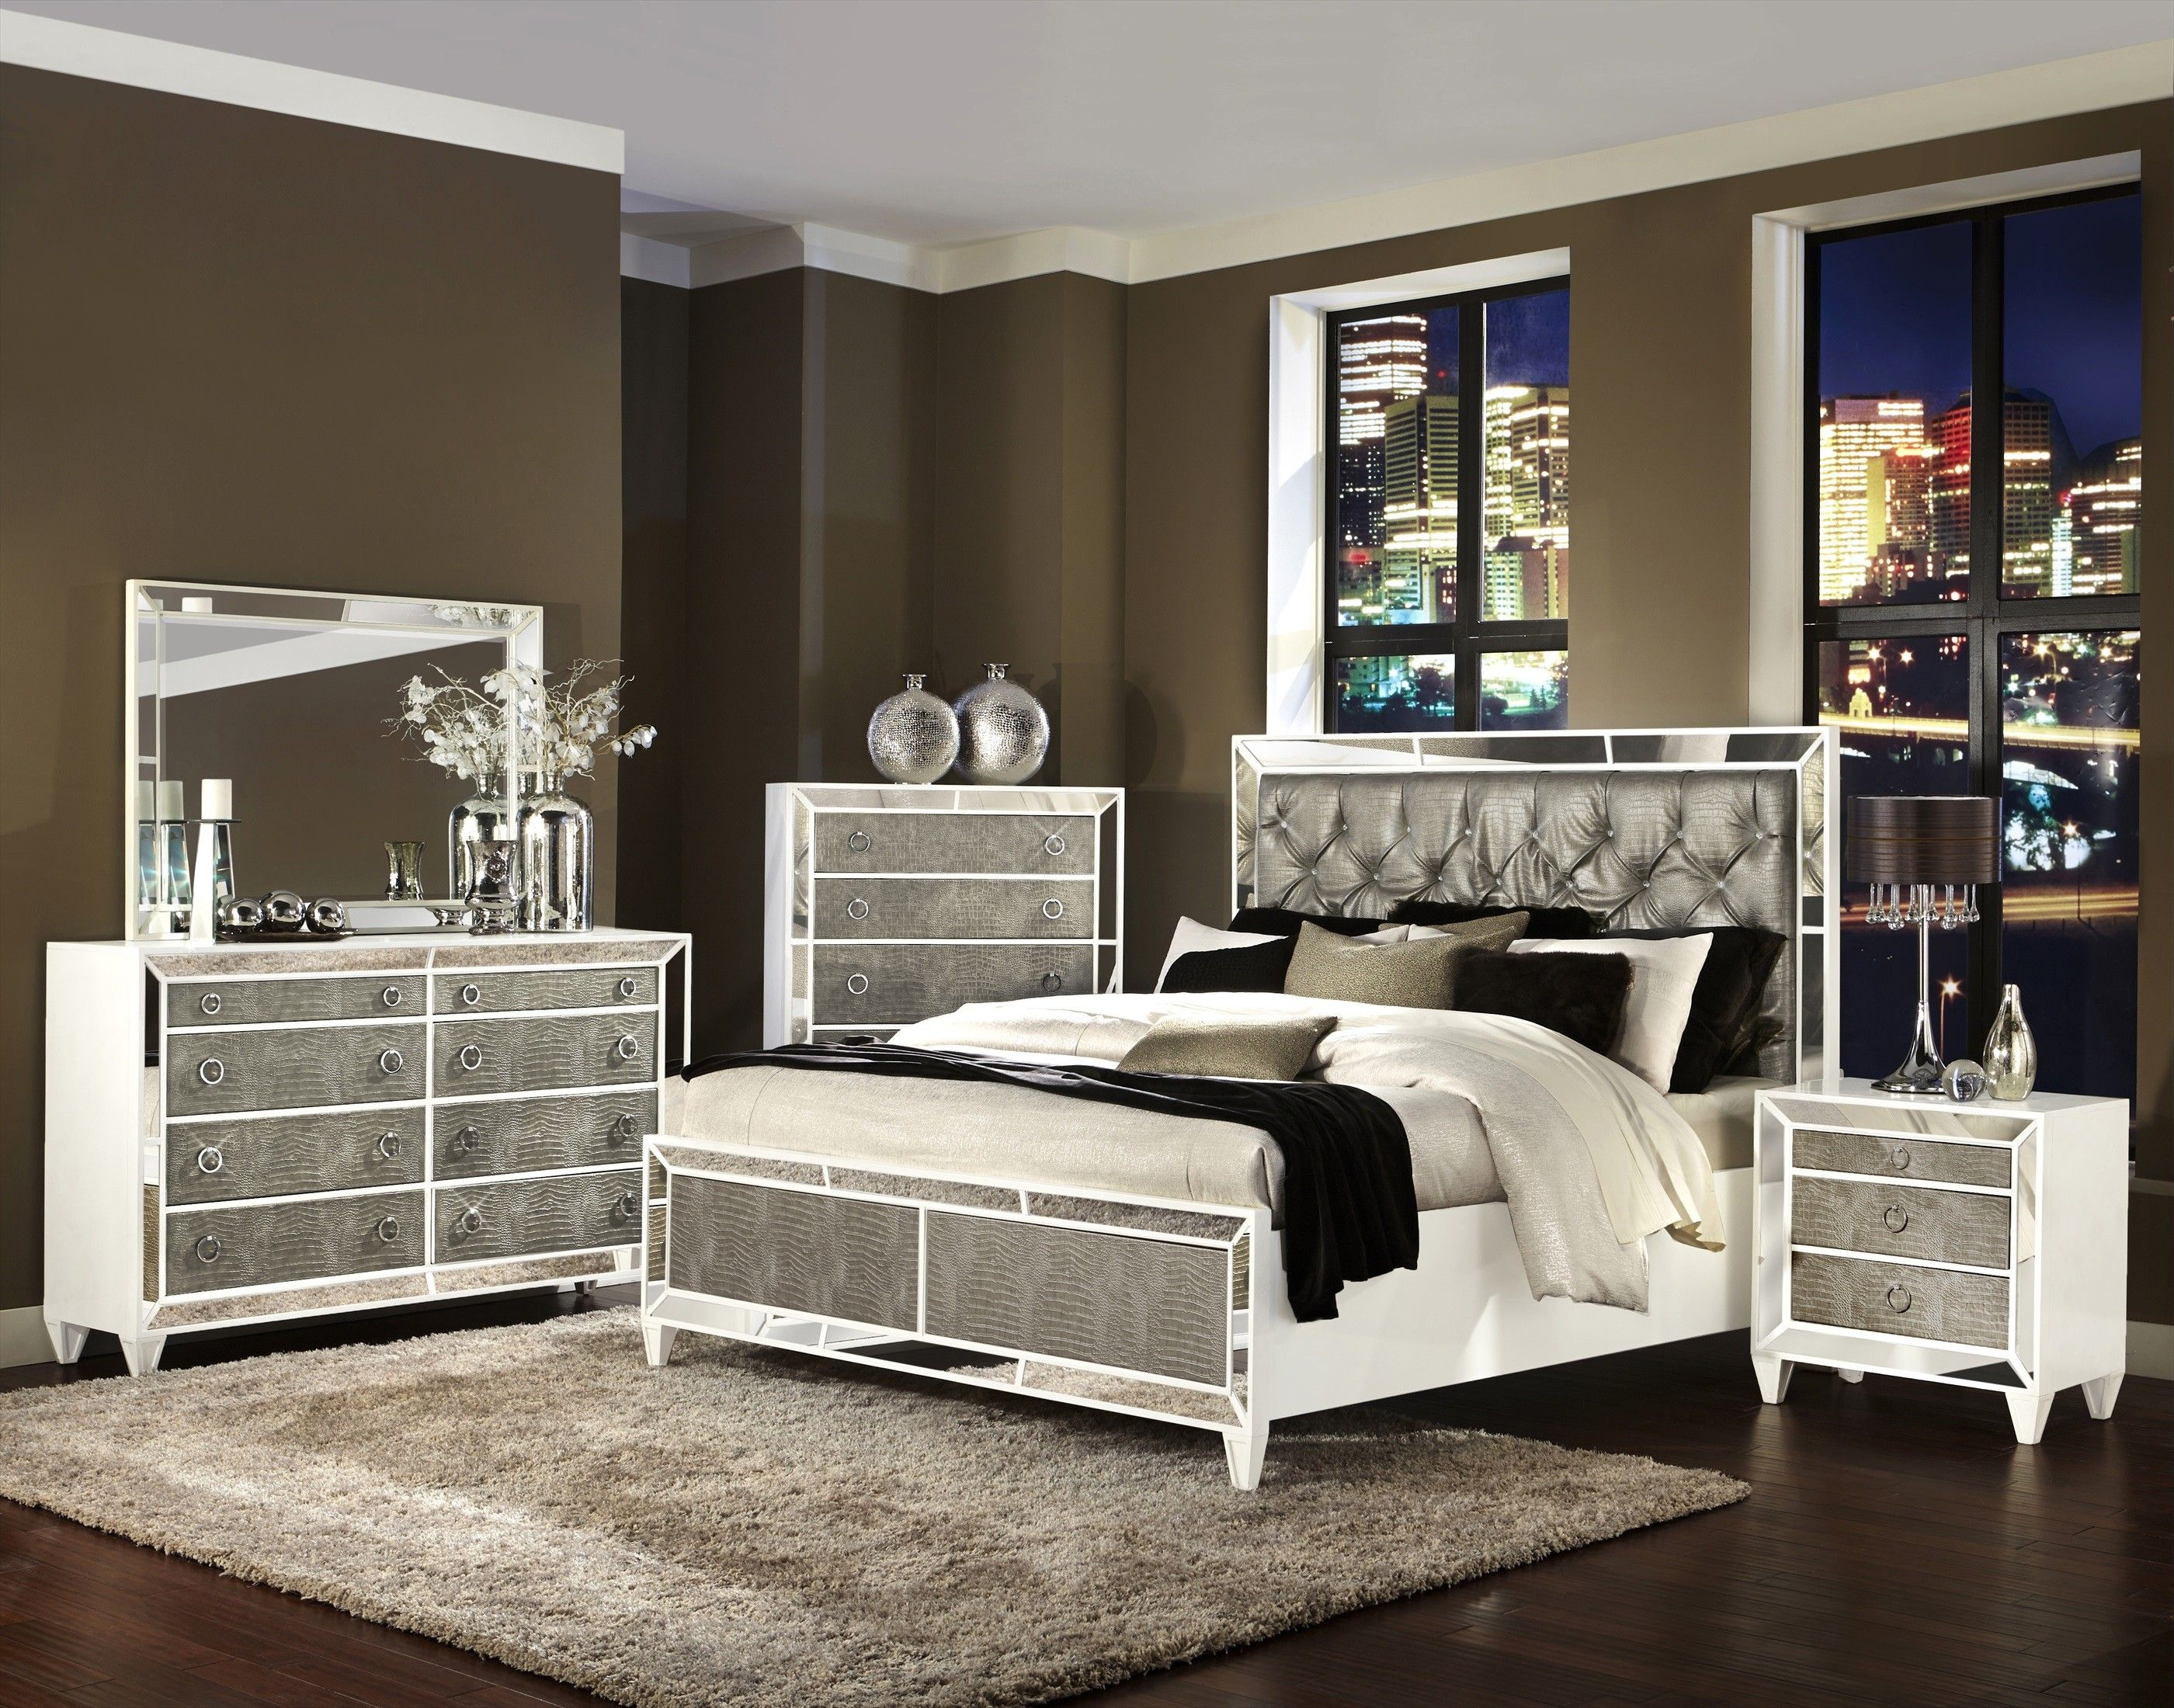 Mirrored Bedroom Furniture Sets Black Master Bedroom Setfurniture. Mirrored Bedroom Furniture Sets Black Master Bedroom Setfurniture